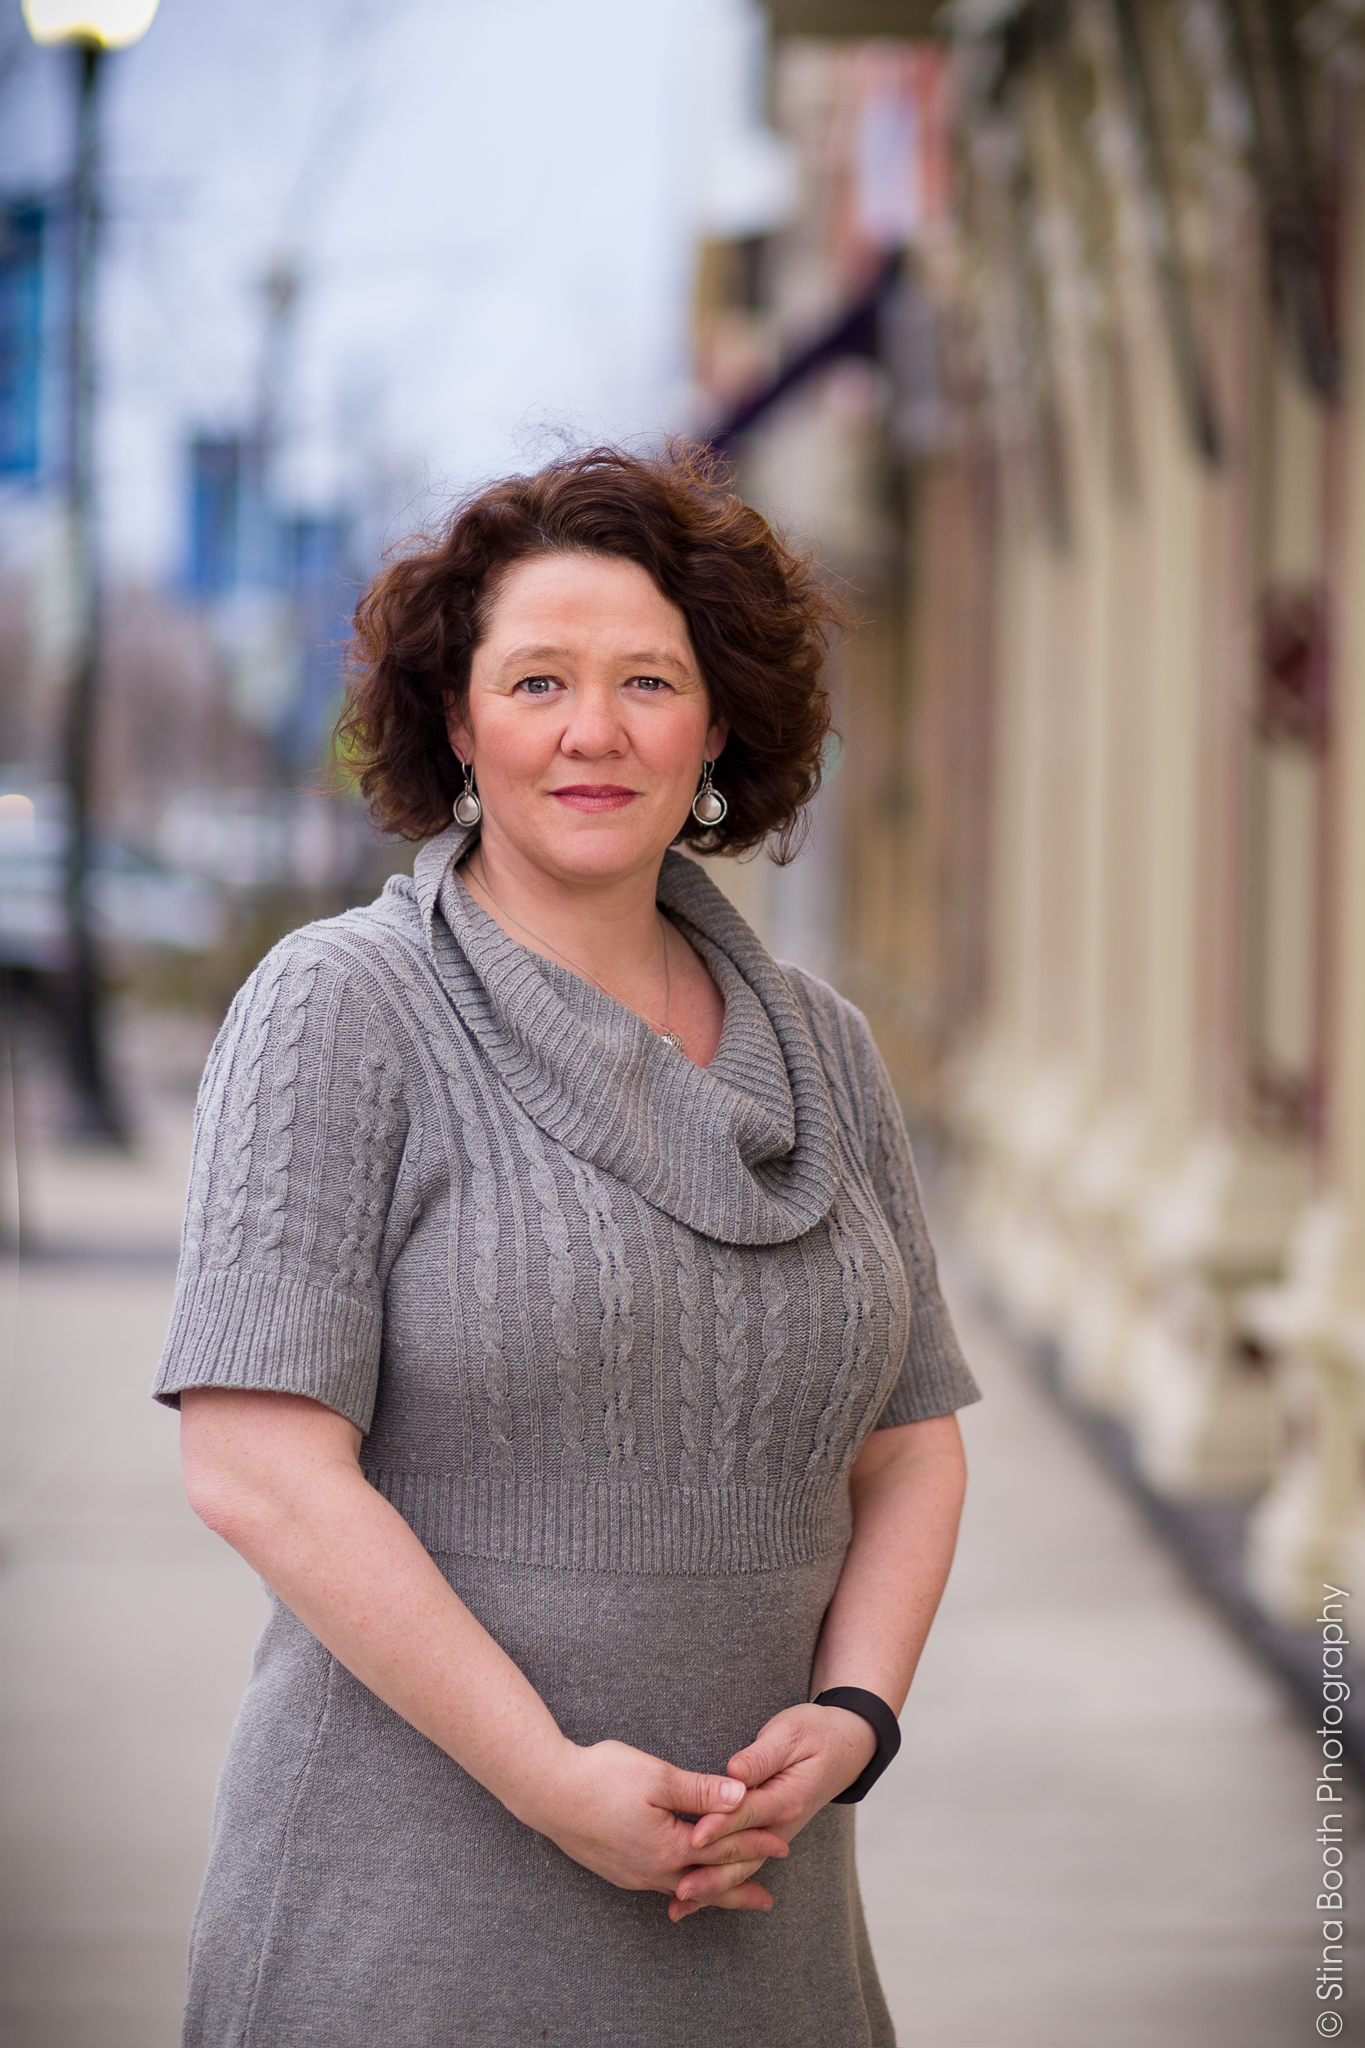 Denise Smith photographed on Main Street in St. Albans for political headshots by Stina Booth